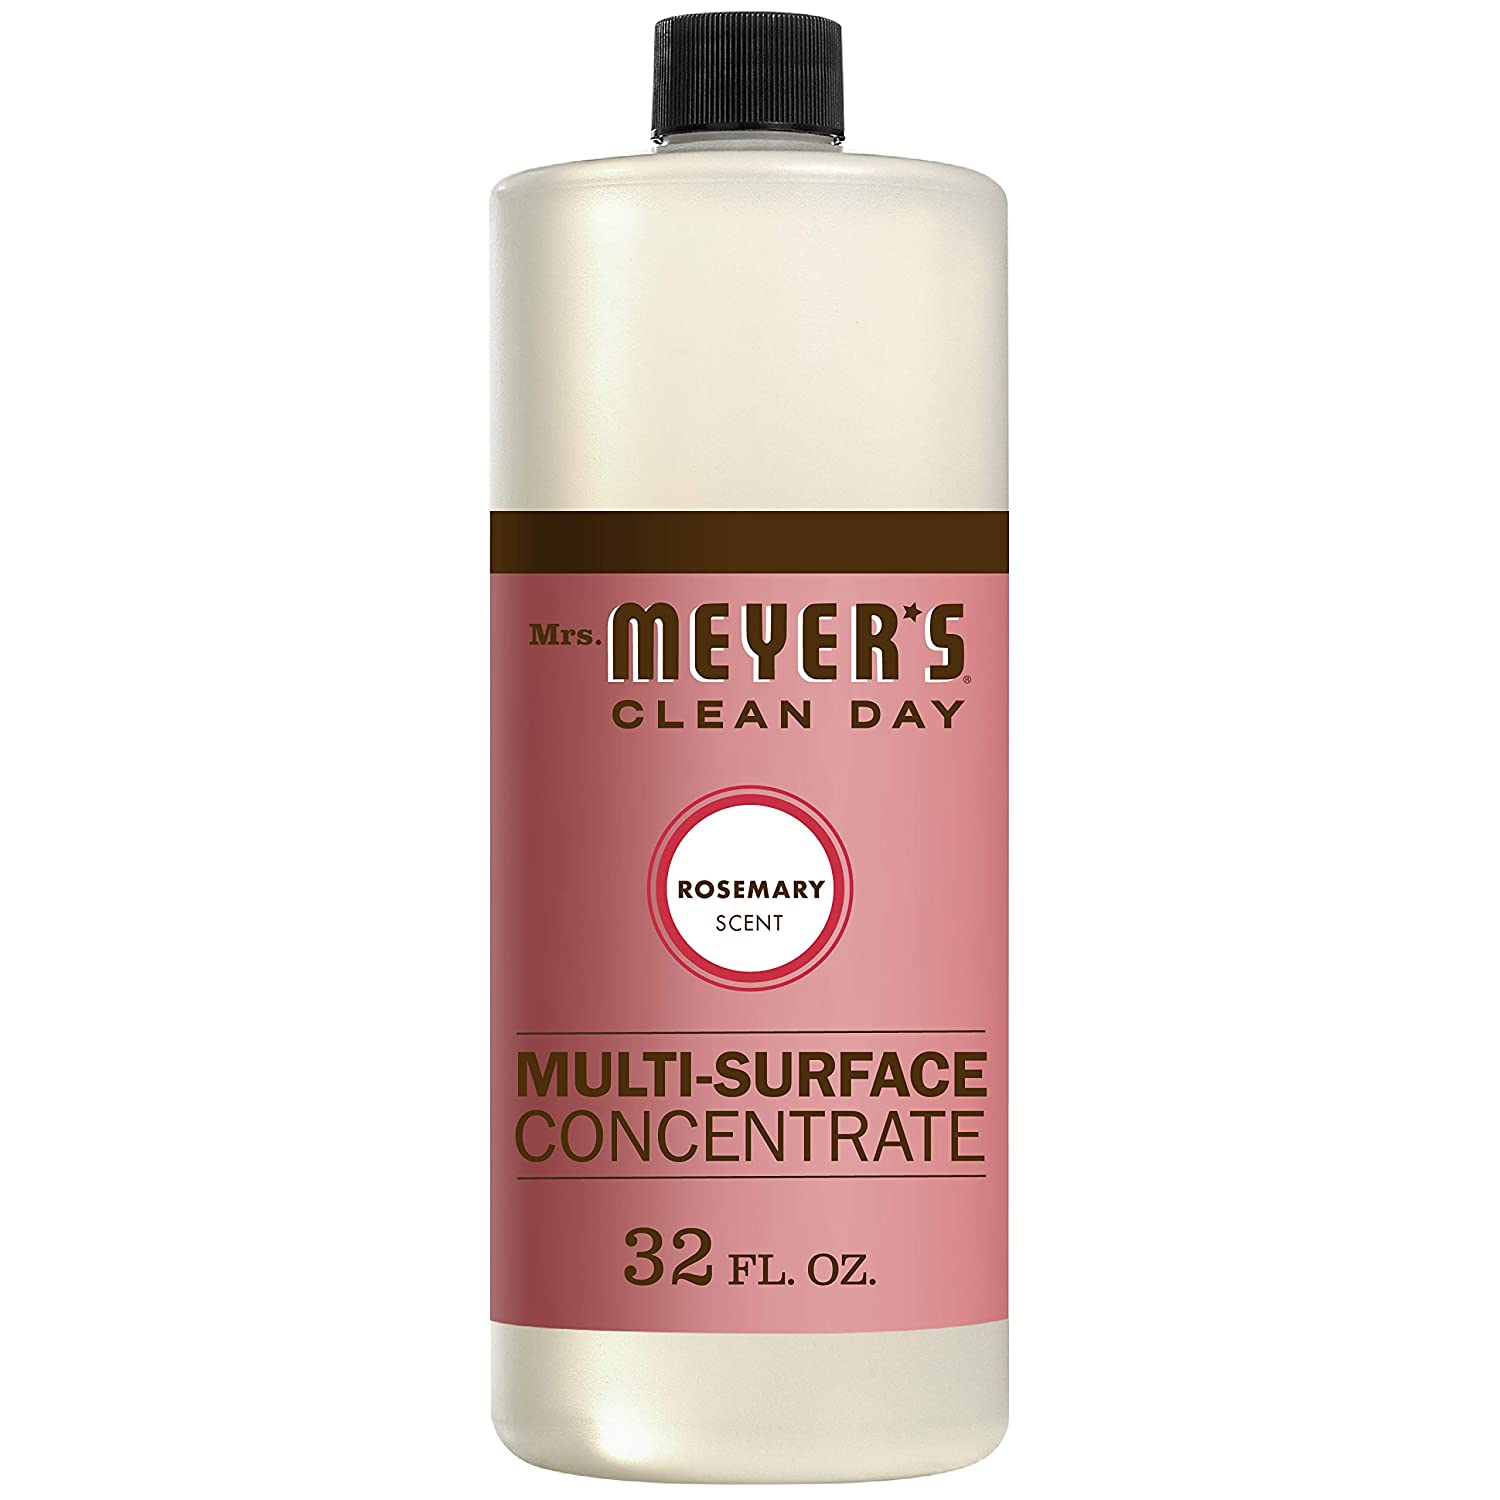 Mrs. Meyers Clean Day Multi-Surface Concentrate Rosemary